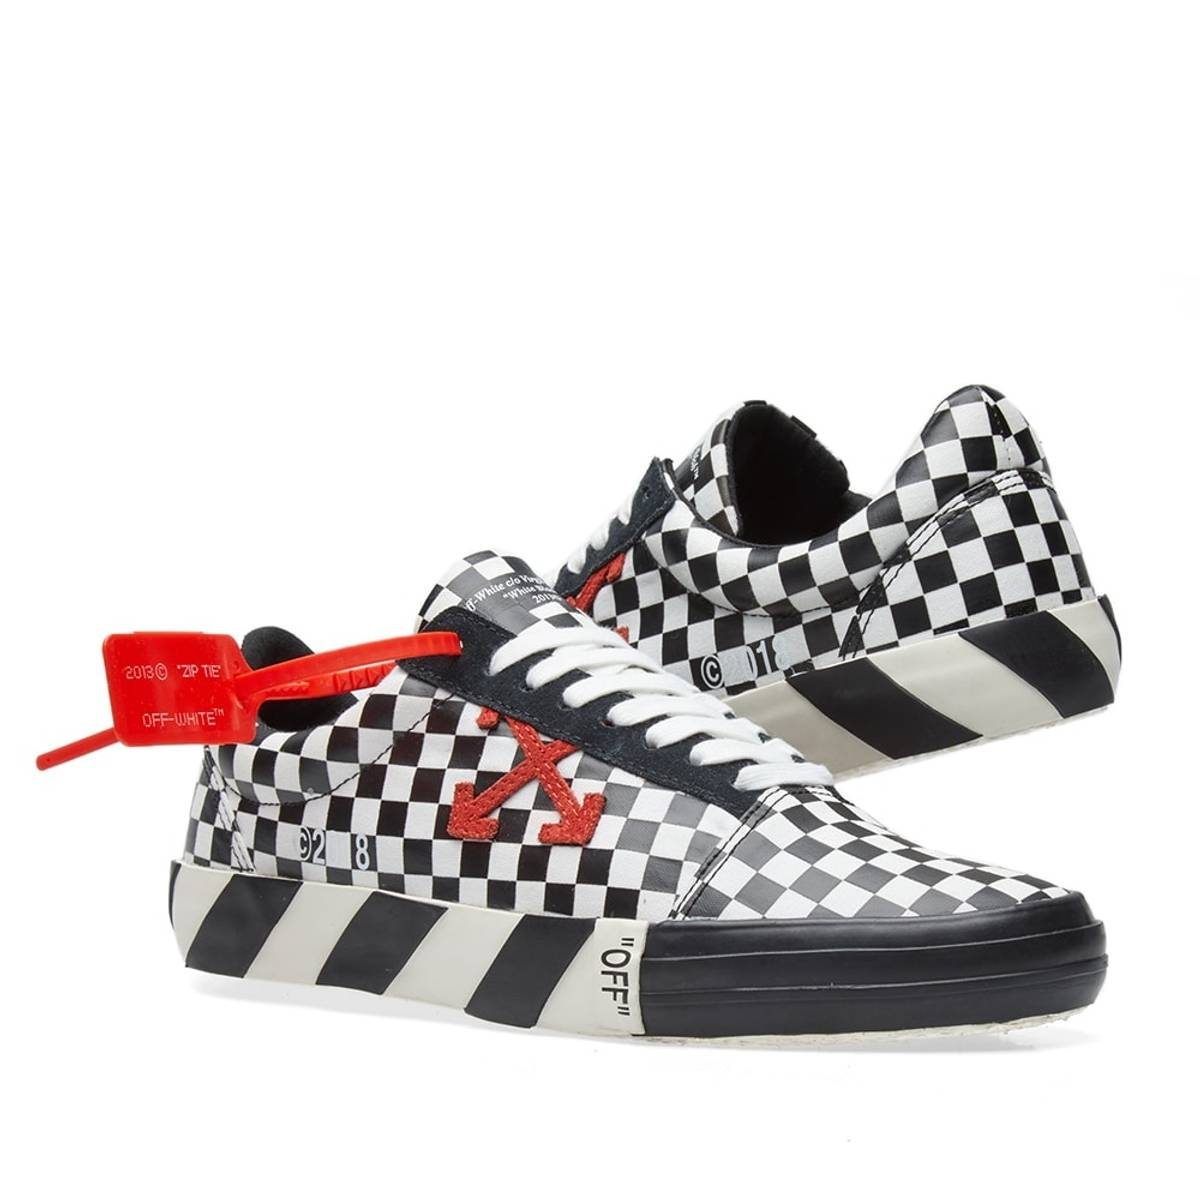 39d0910e77a Off-White OFF-WHITE Vulc Checkered Low Top Sneaker (SIZE US 8.5